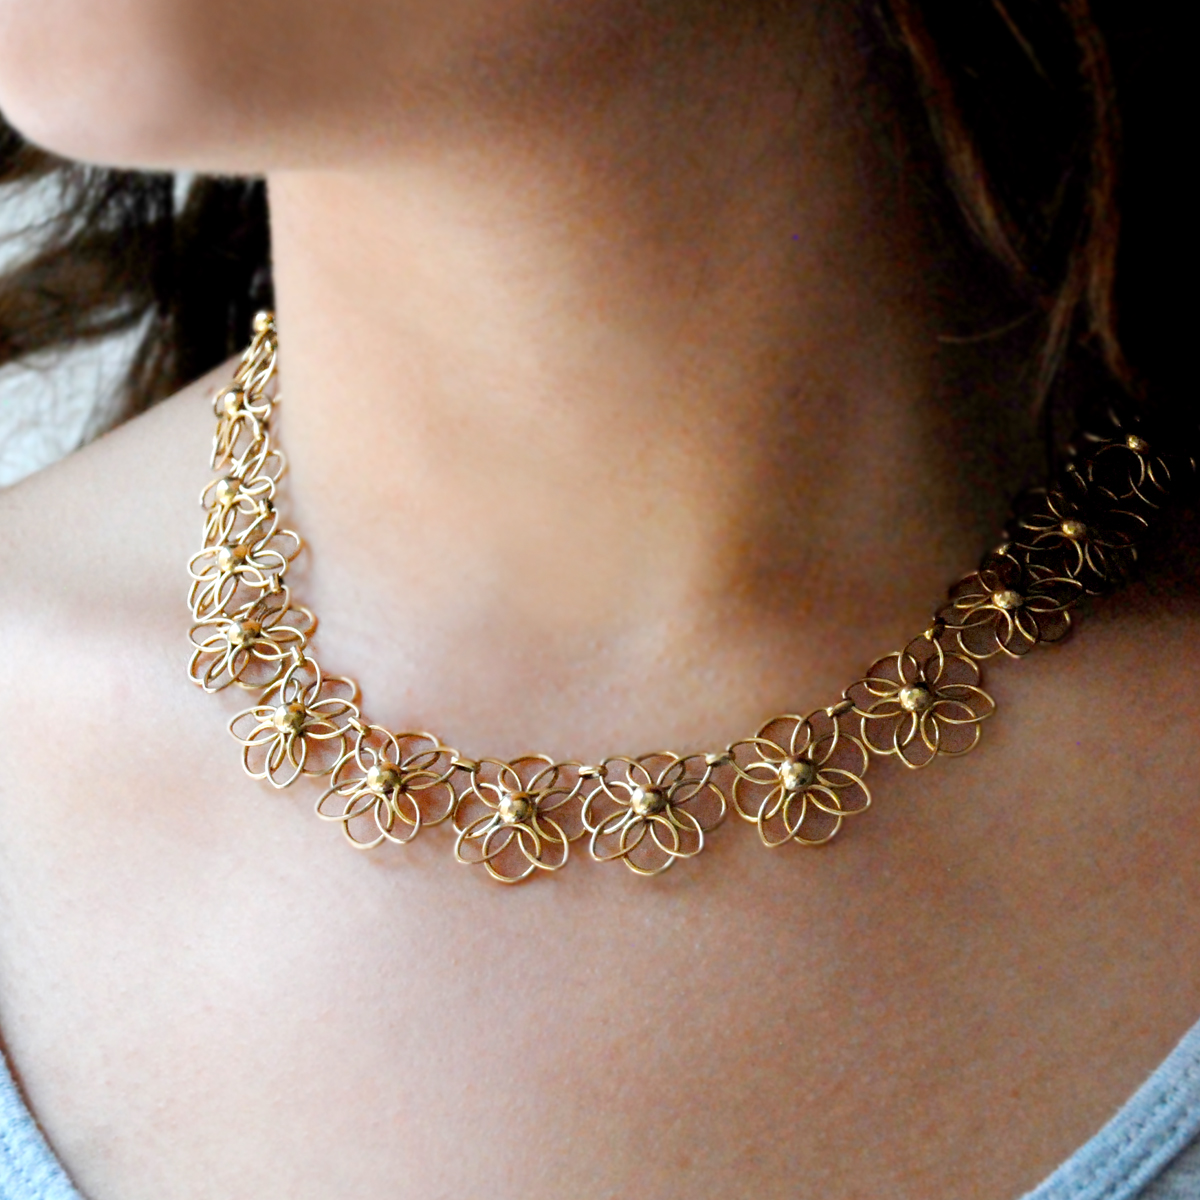 14 Carat Gold Flower Necklace - Jewellery Designs